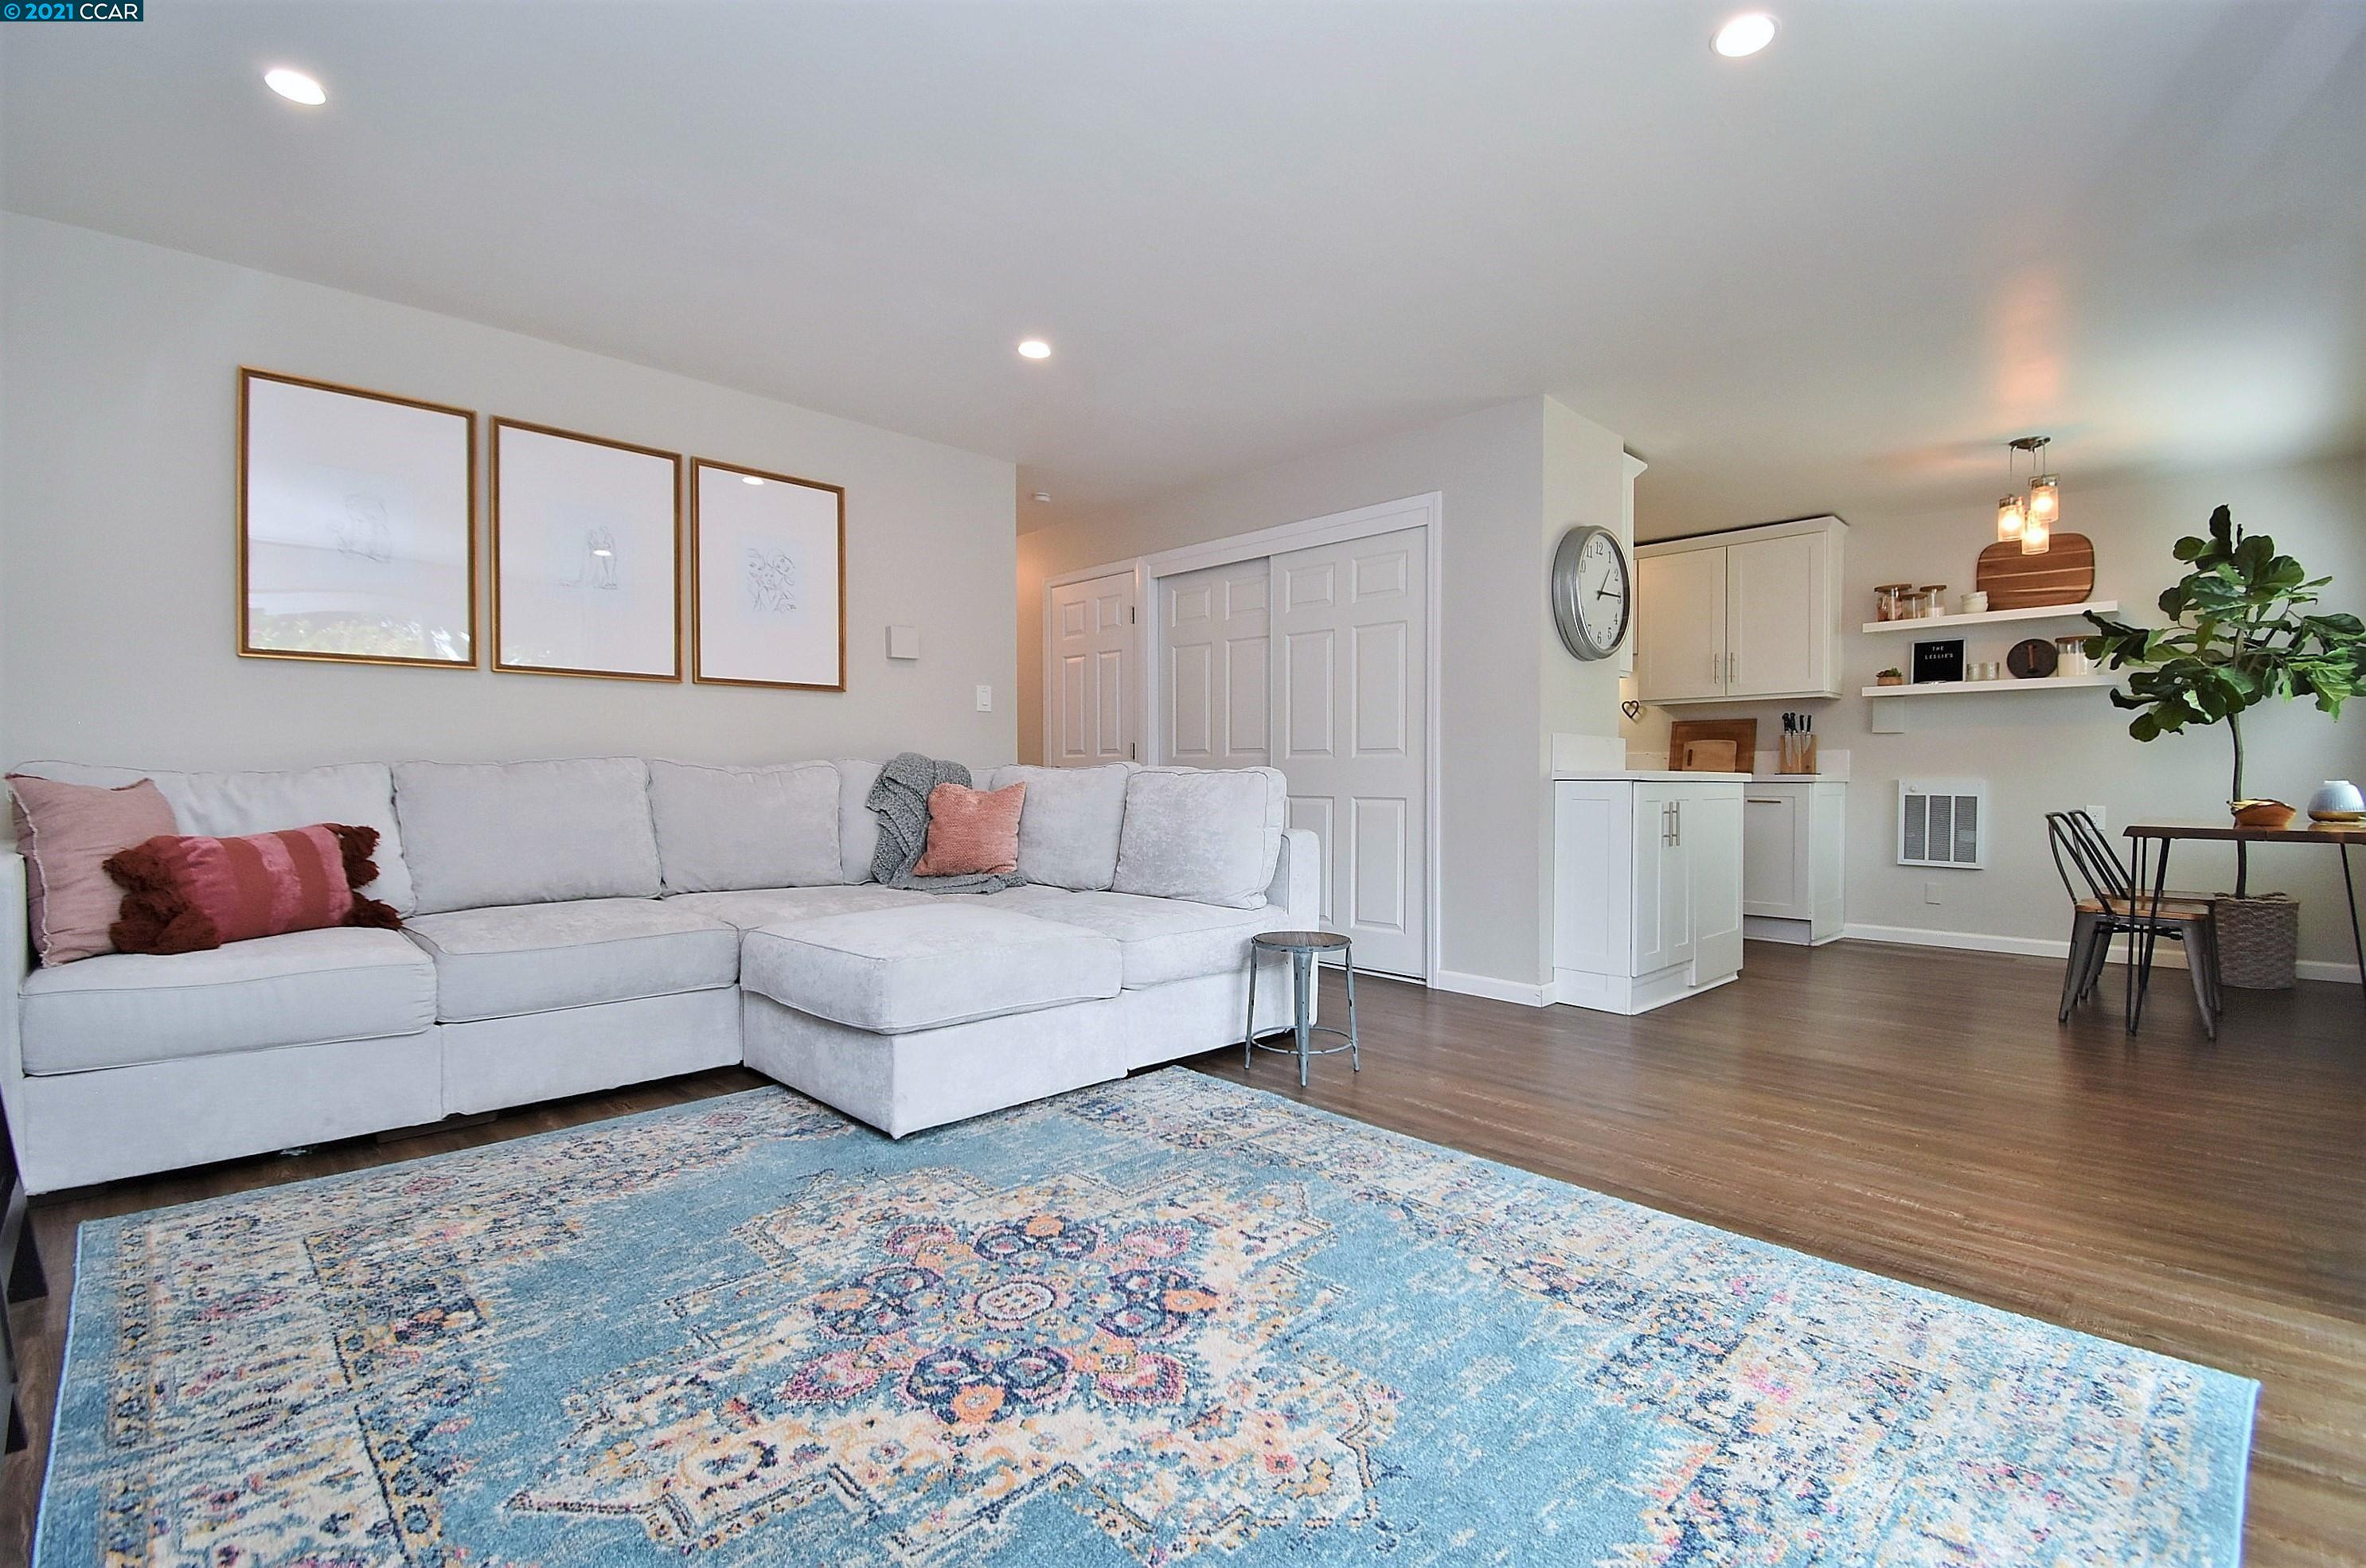 Open Sunday 1-4PM! Beautifully updated level-in Condo on the Pleasant Hill/Walnut Creek border! Updated kitchen featuring new white cabinetry, Quartz counters, stainless steel appliances and Luxury Vinyl Plank floors! Recessed lighting, inside laundry, dual pane windows and updated full bathroom. Great location near local Palos Verdes Mall Shopping, Larkey Park, BART and freeway access. Large outdoor private patio. See Matterport 3D tour.